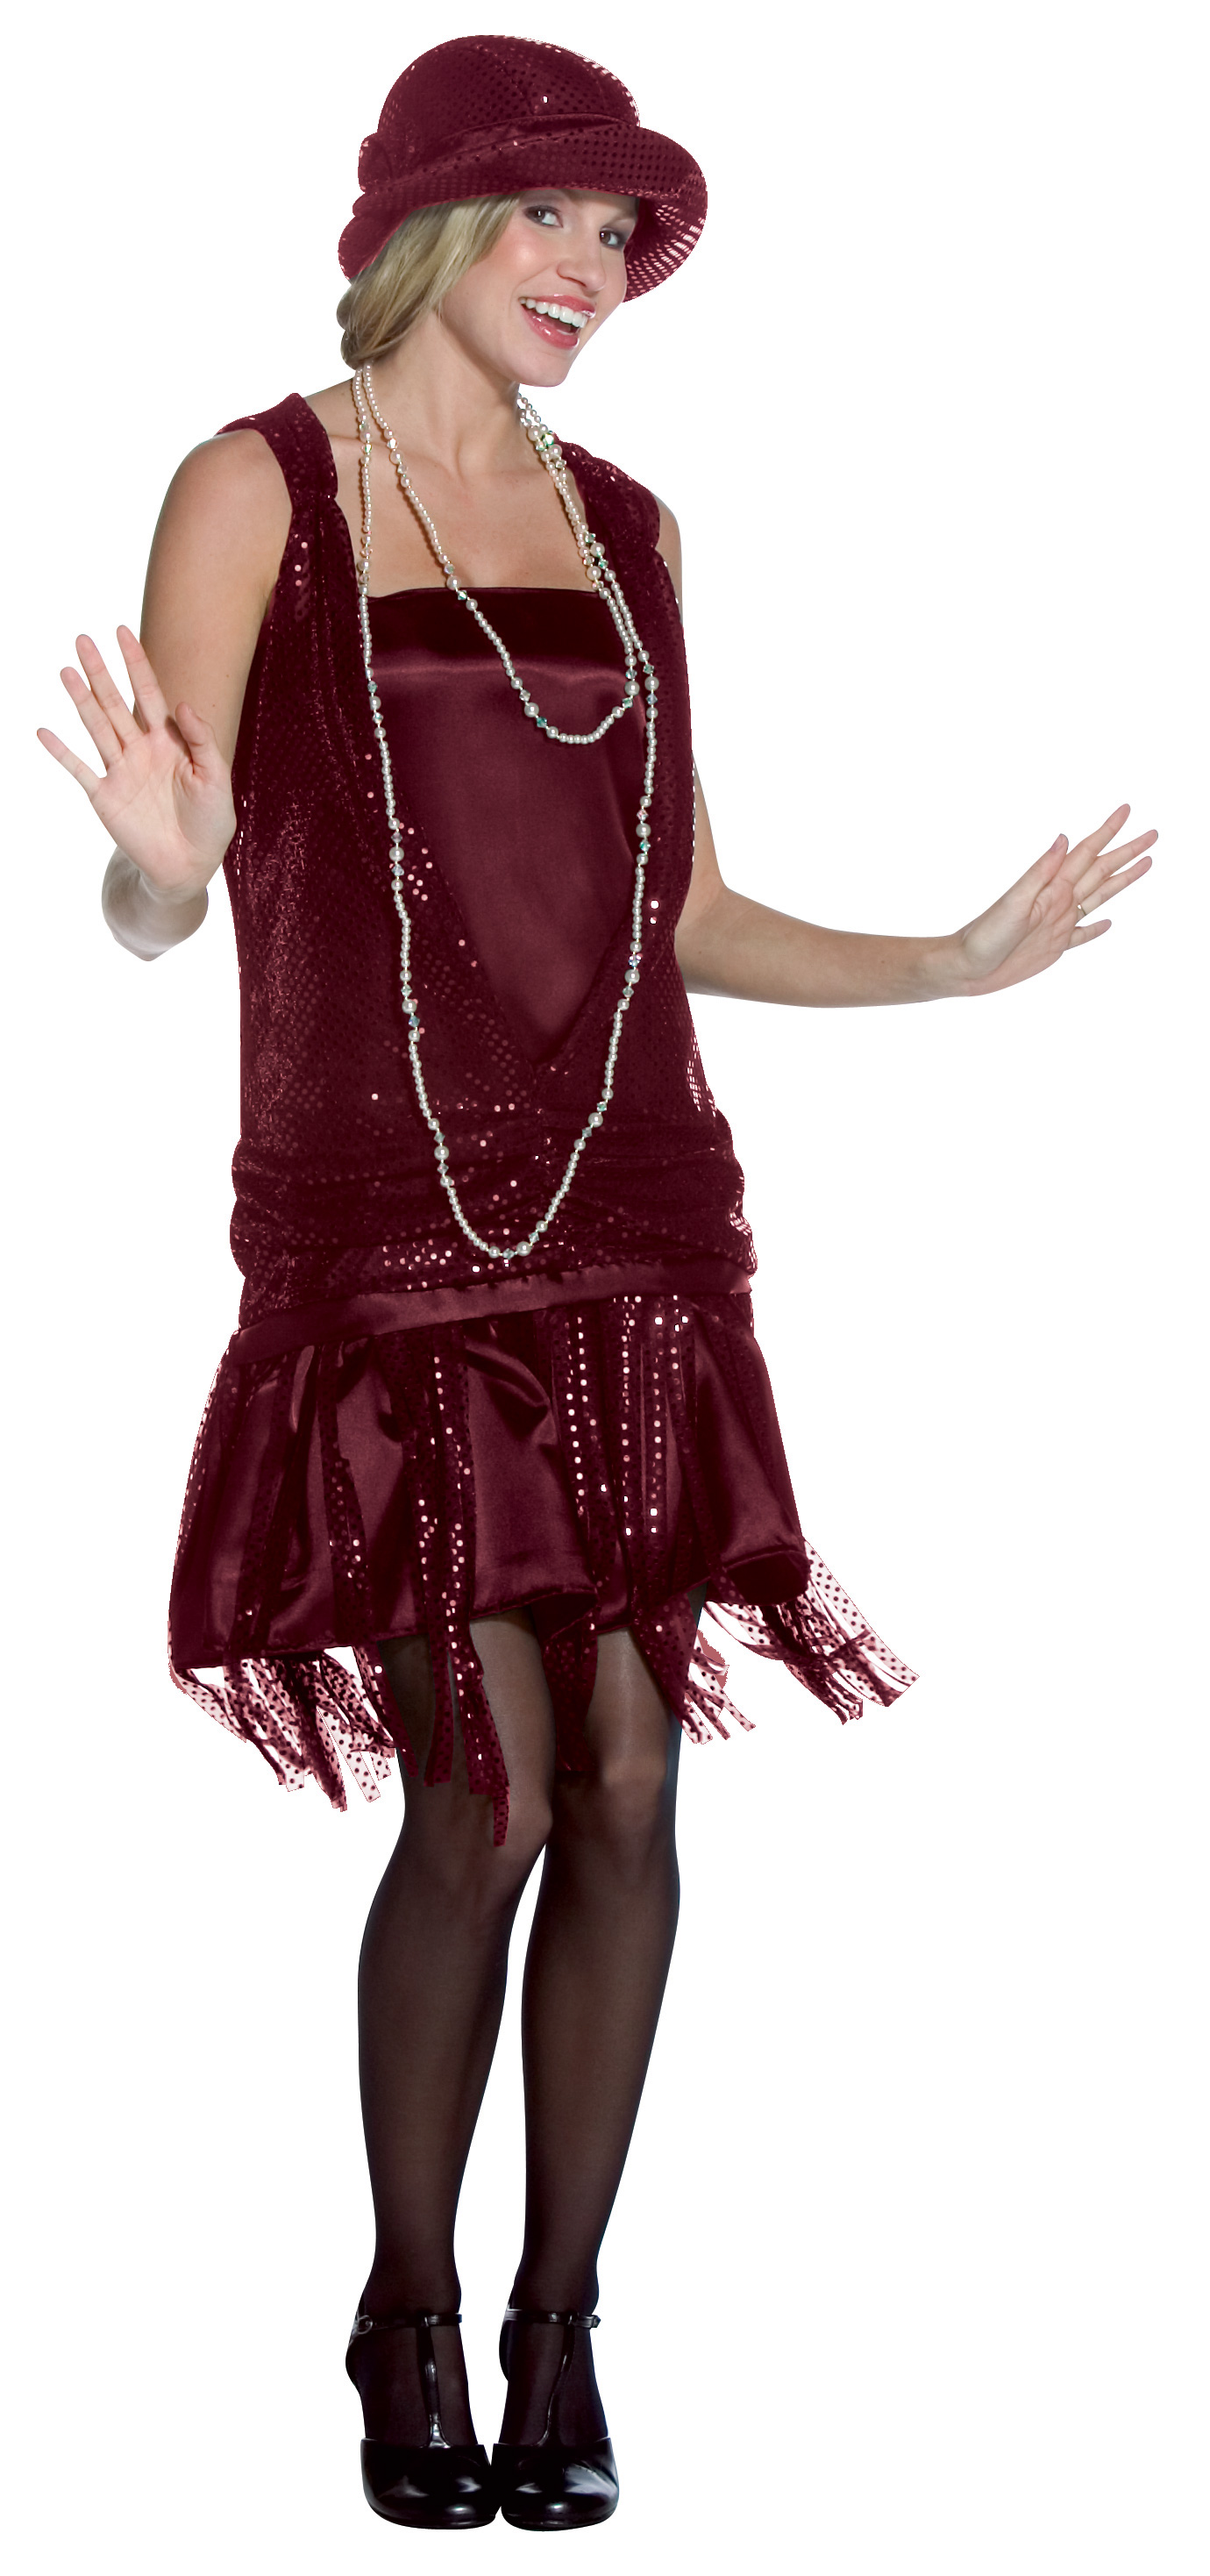 Home great gatsby dresses great gatsby inspired dresses styletyme